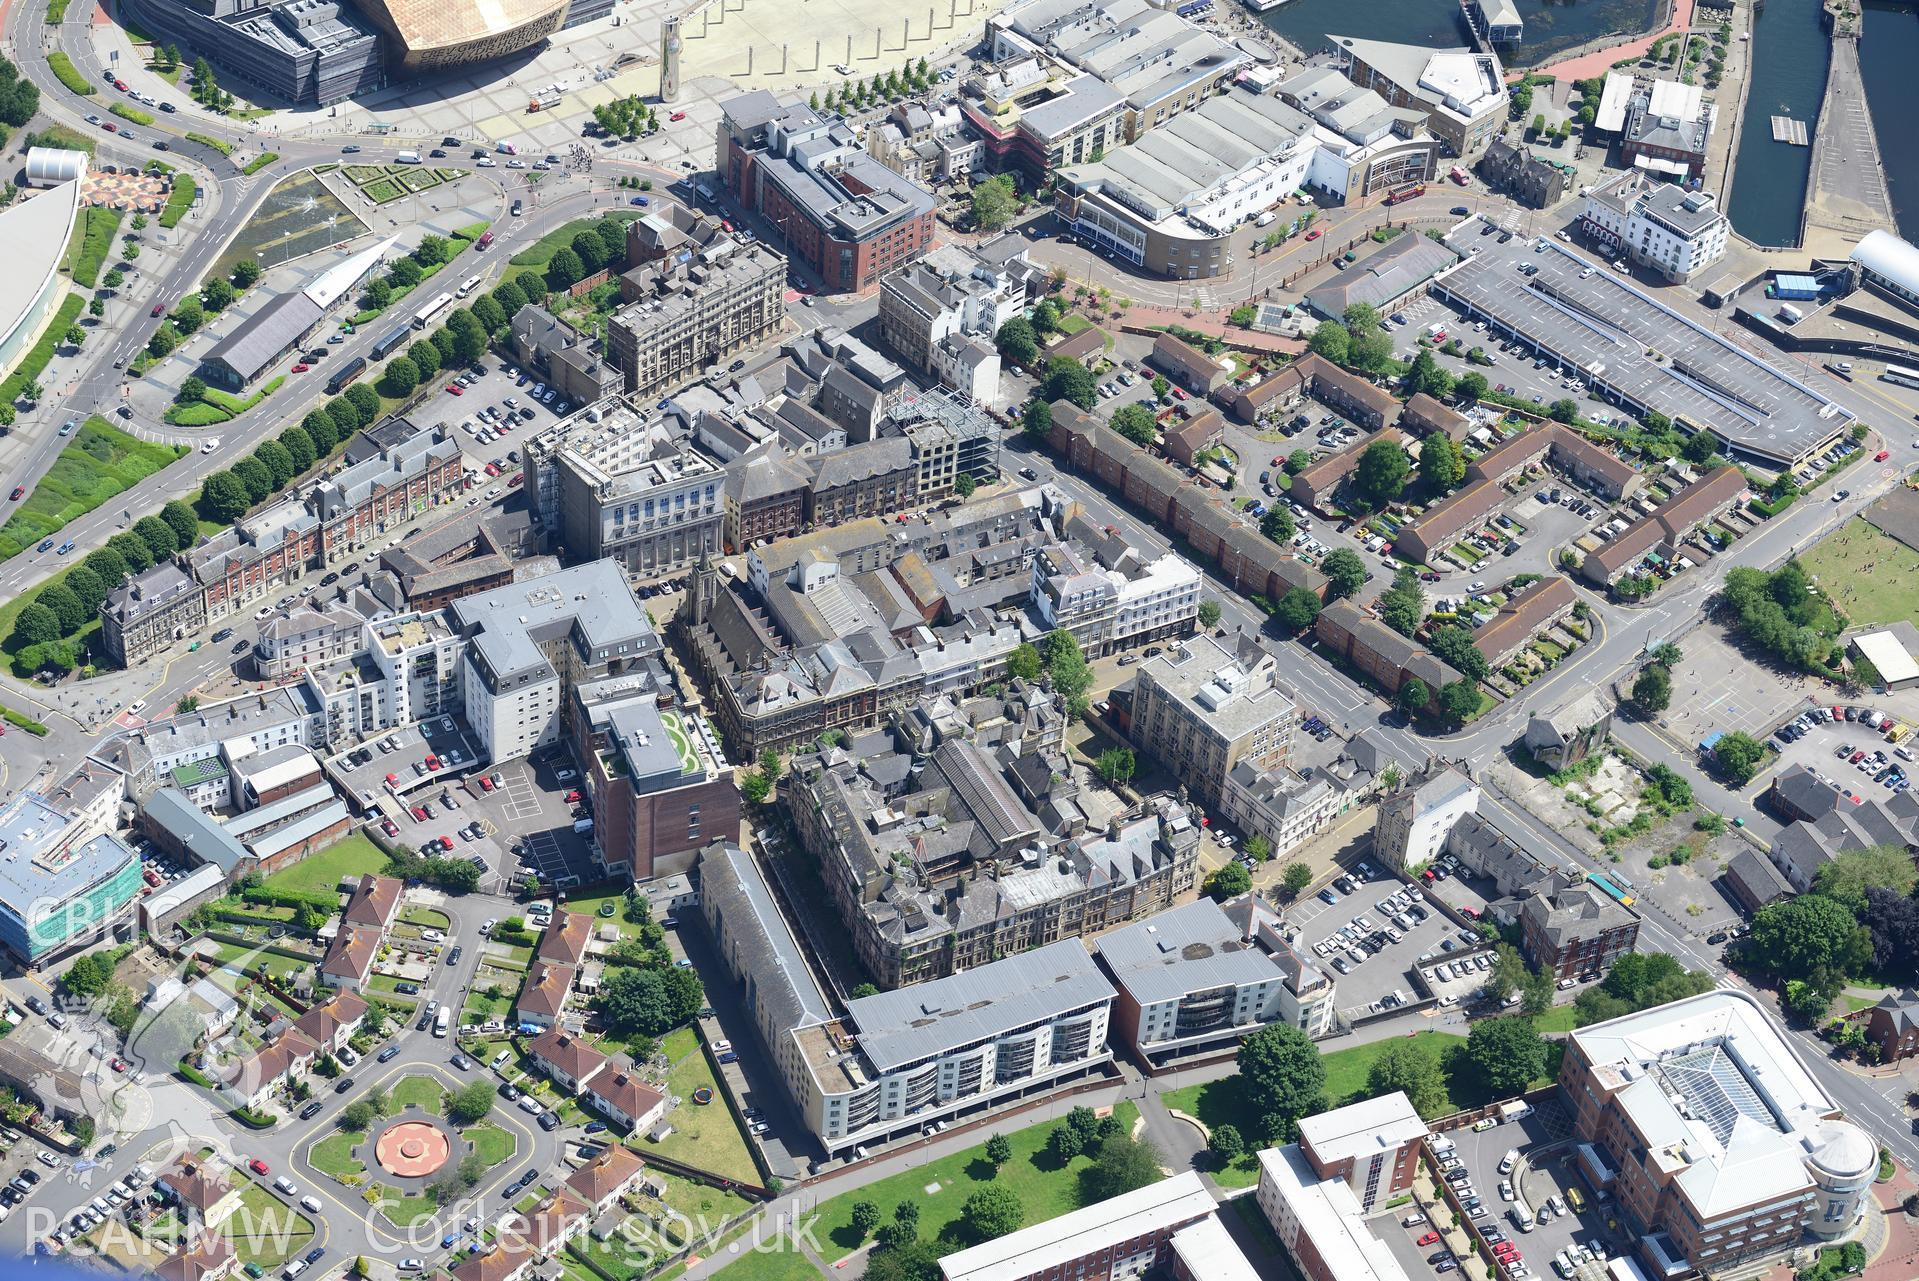 The old Coal Exchange and Baltic House, Mount Stuart Square, Butetown, Cardiff Bay. Oblique aerial photograph taken during the Royal Commission's programme of archaeological aerial reconnaissance by Toby Driver on 29th June 2015.